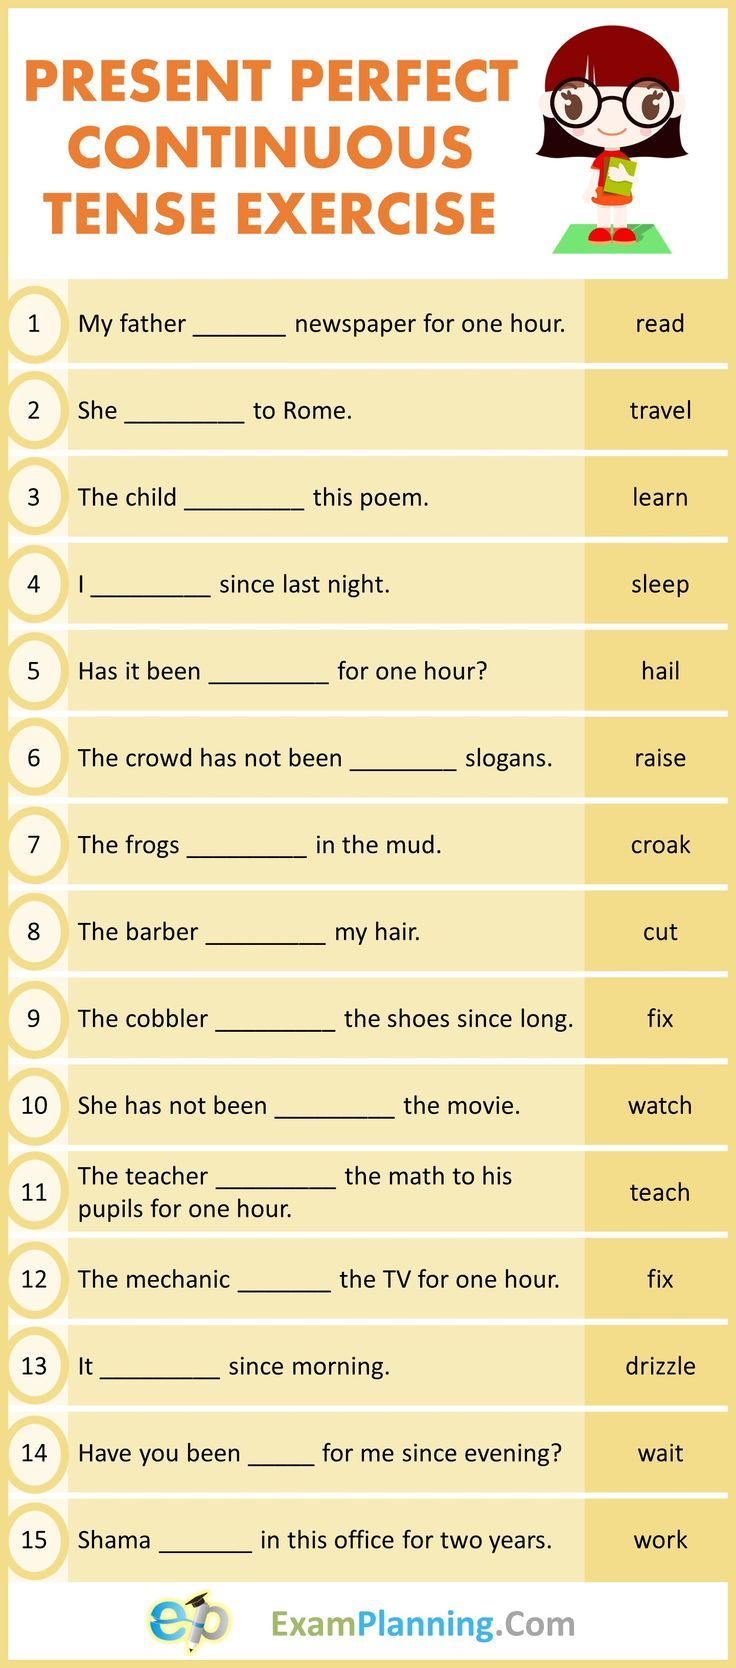 small resolution of Present Perfect Continuous Tense Exercises   Tenses exercises